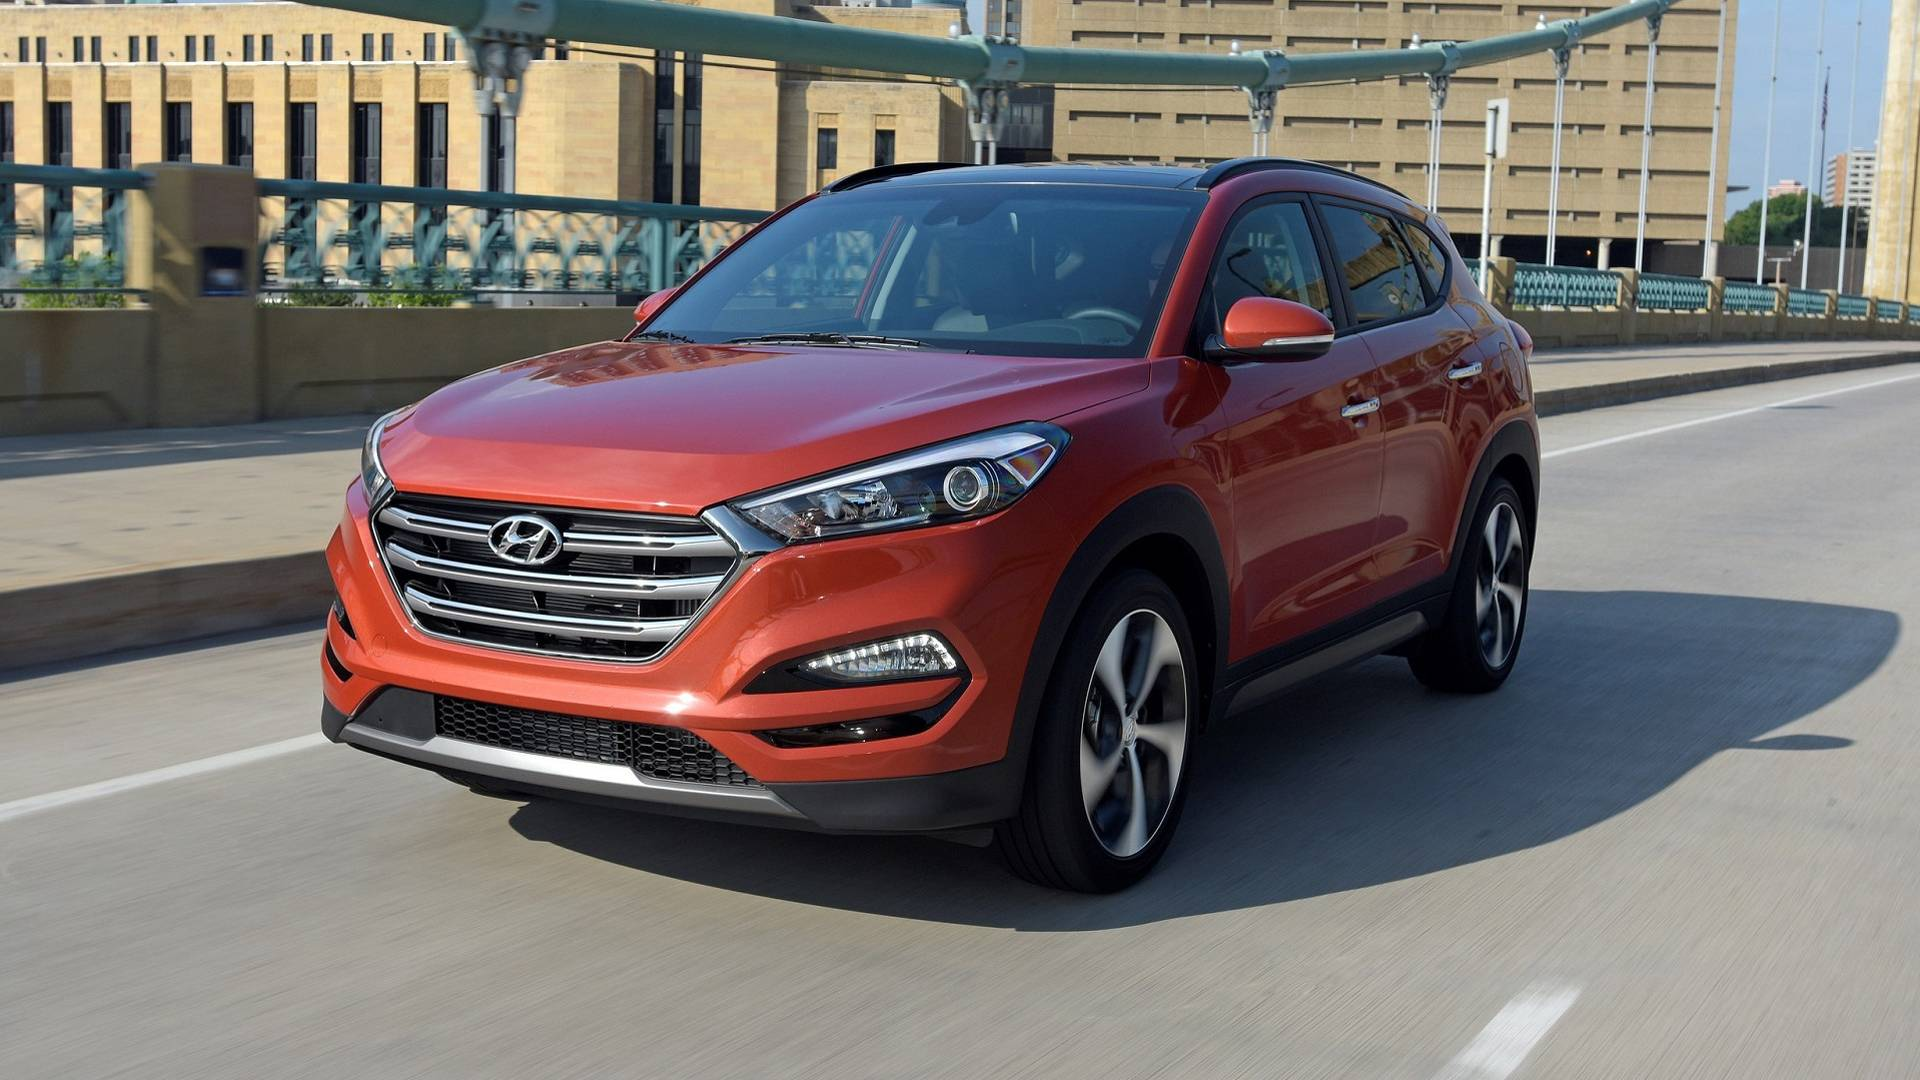 Best-selling cars in Canada - Hyundai